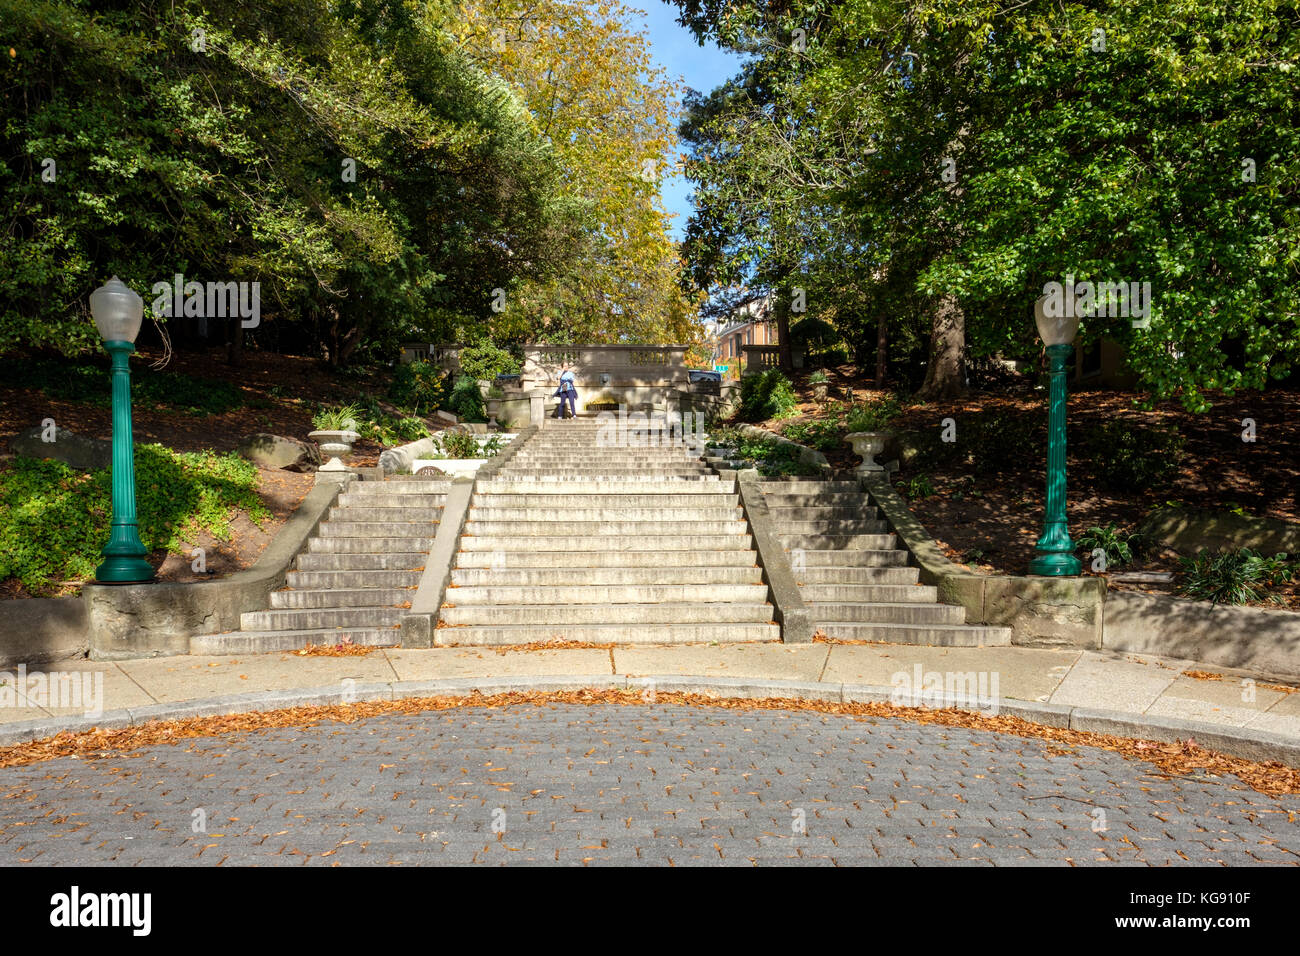 The Spanish Steps, the only D.C. park to occupy a city street. A pedestrian passageway in the Kalorama neighbourhood - Stock Image